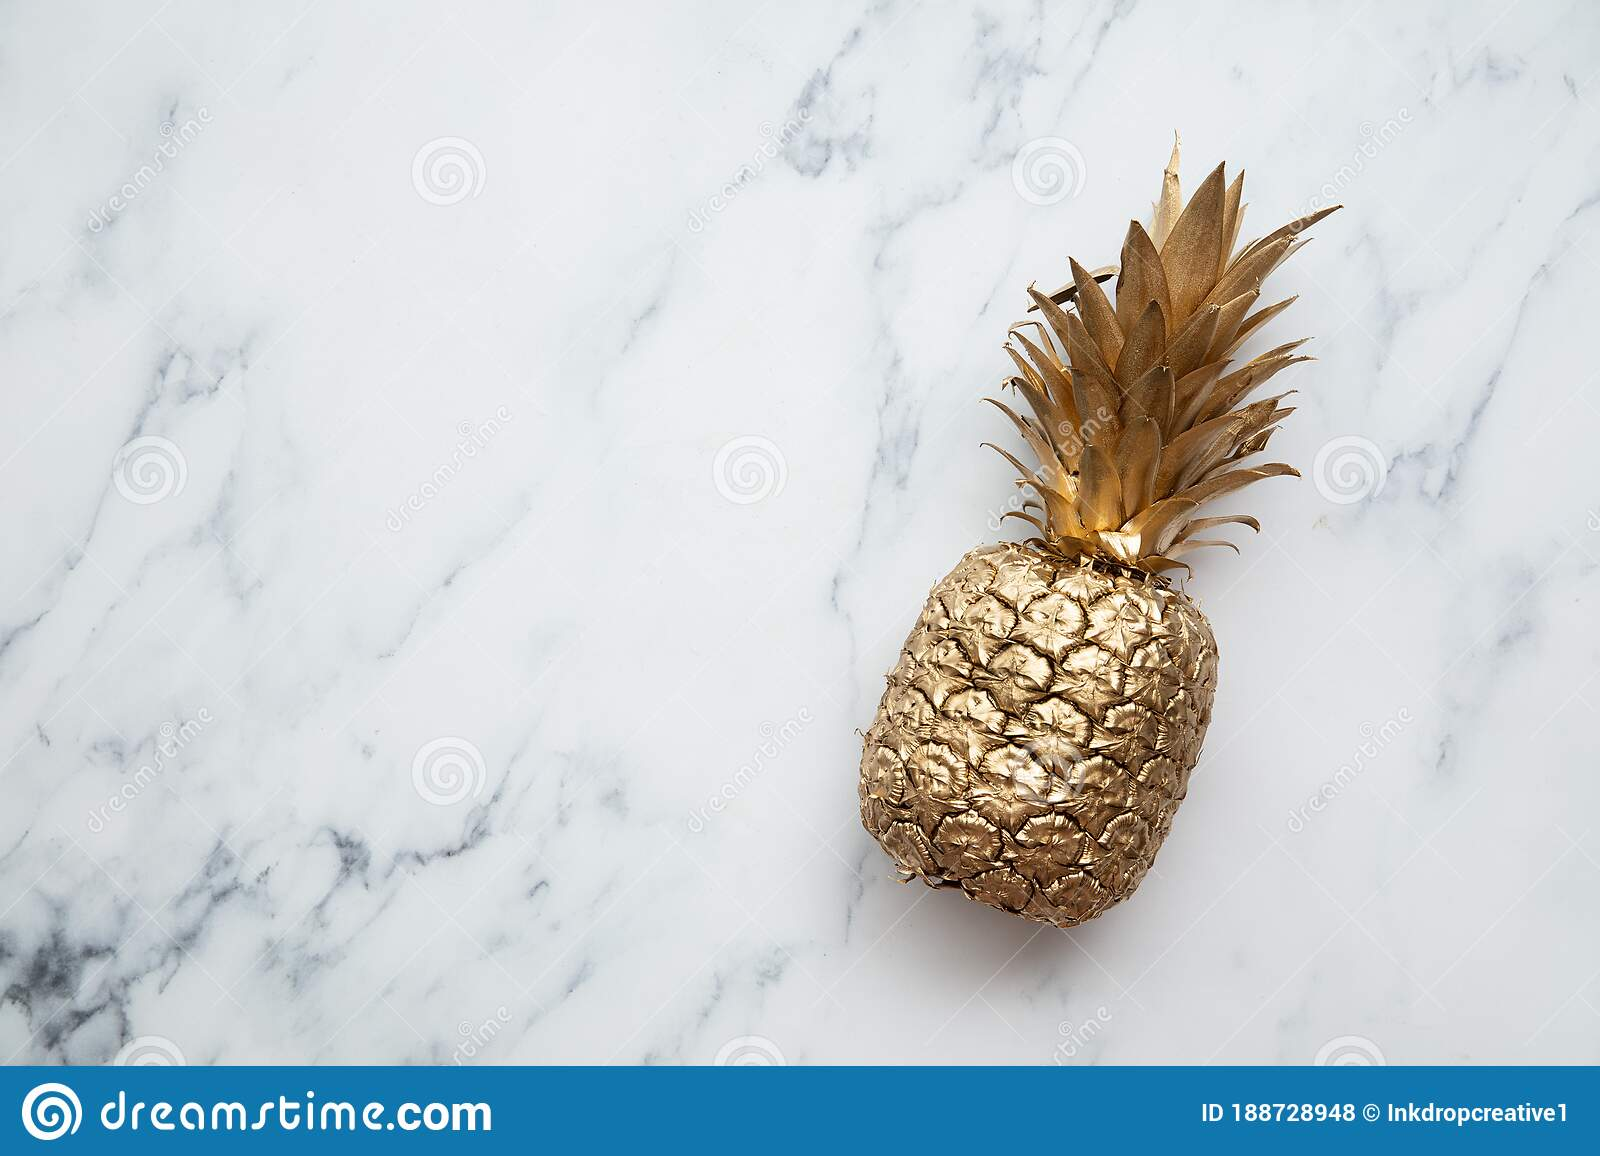 2 382 Gold Pineapple Photos Free Royalty Free Stock Photos From Dreamstime